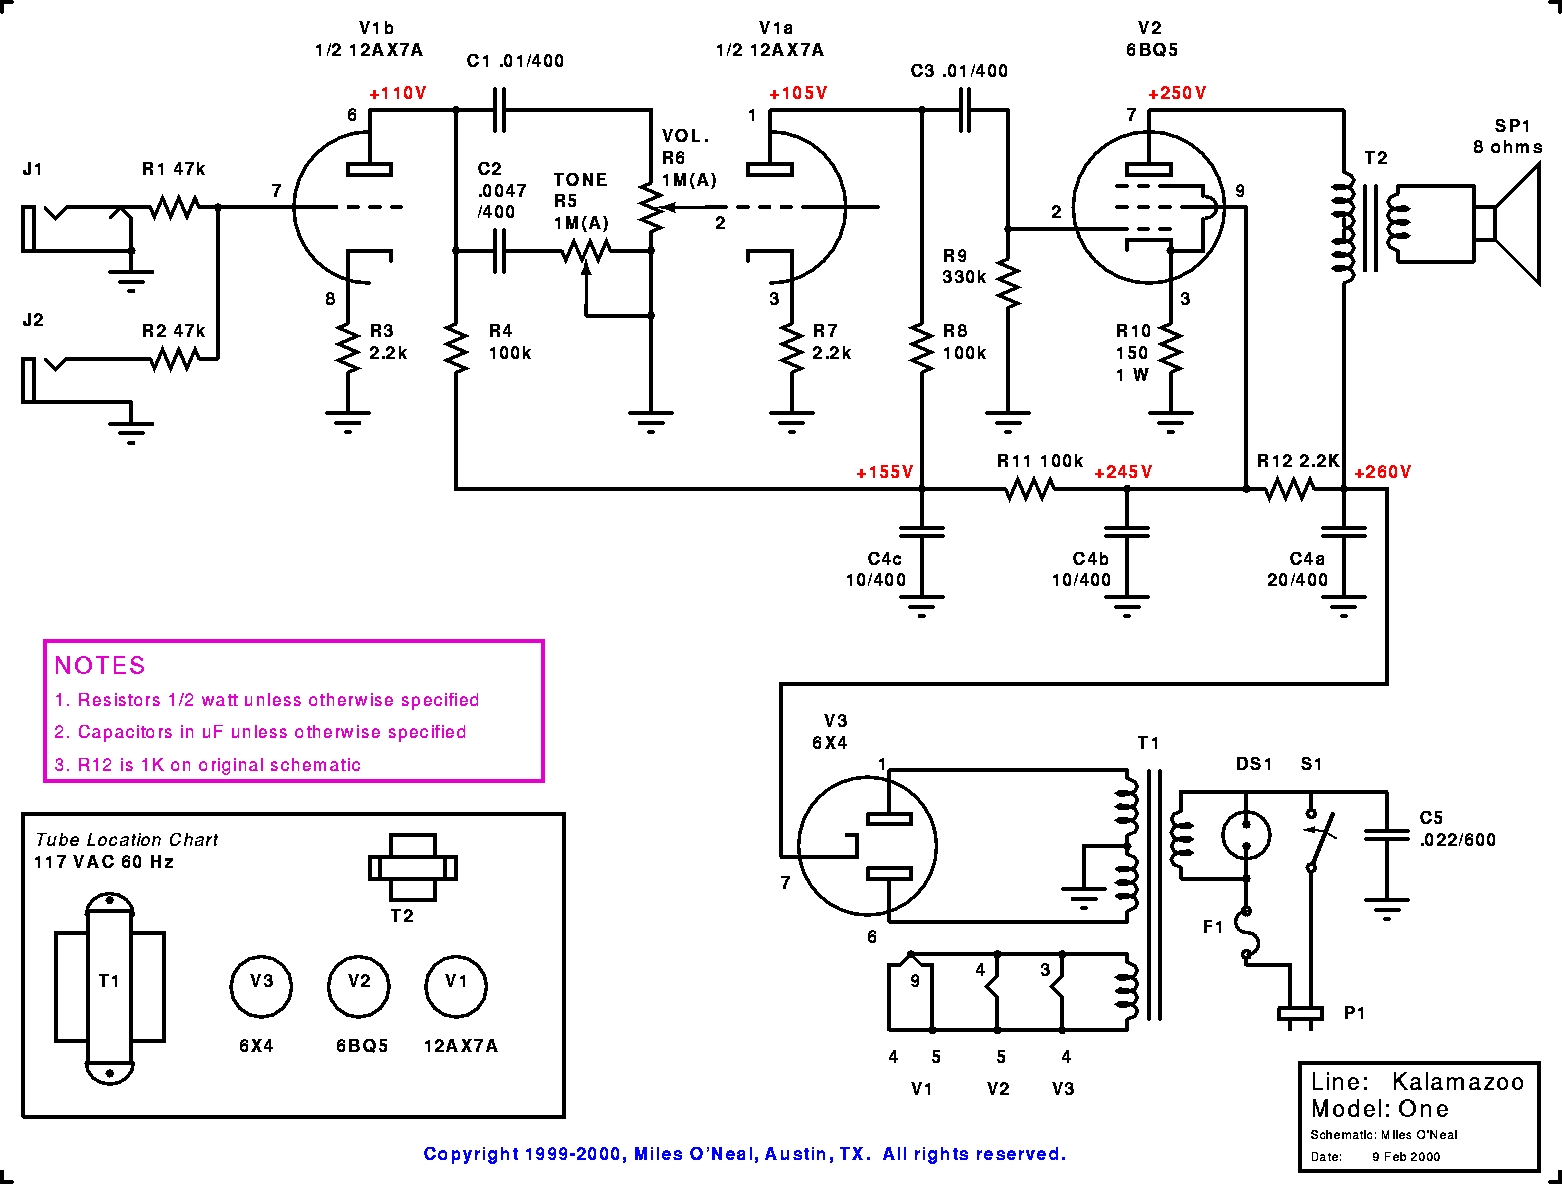 Wiring Diagram Guitar And Amplifier 35 Images Schematics Schem New Kalamazoo Amp Field Guide Model 1 Schematic Footswitch At Cita